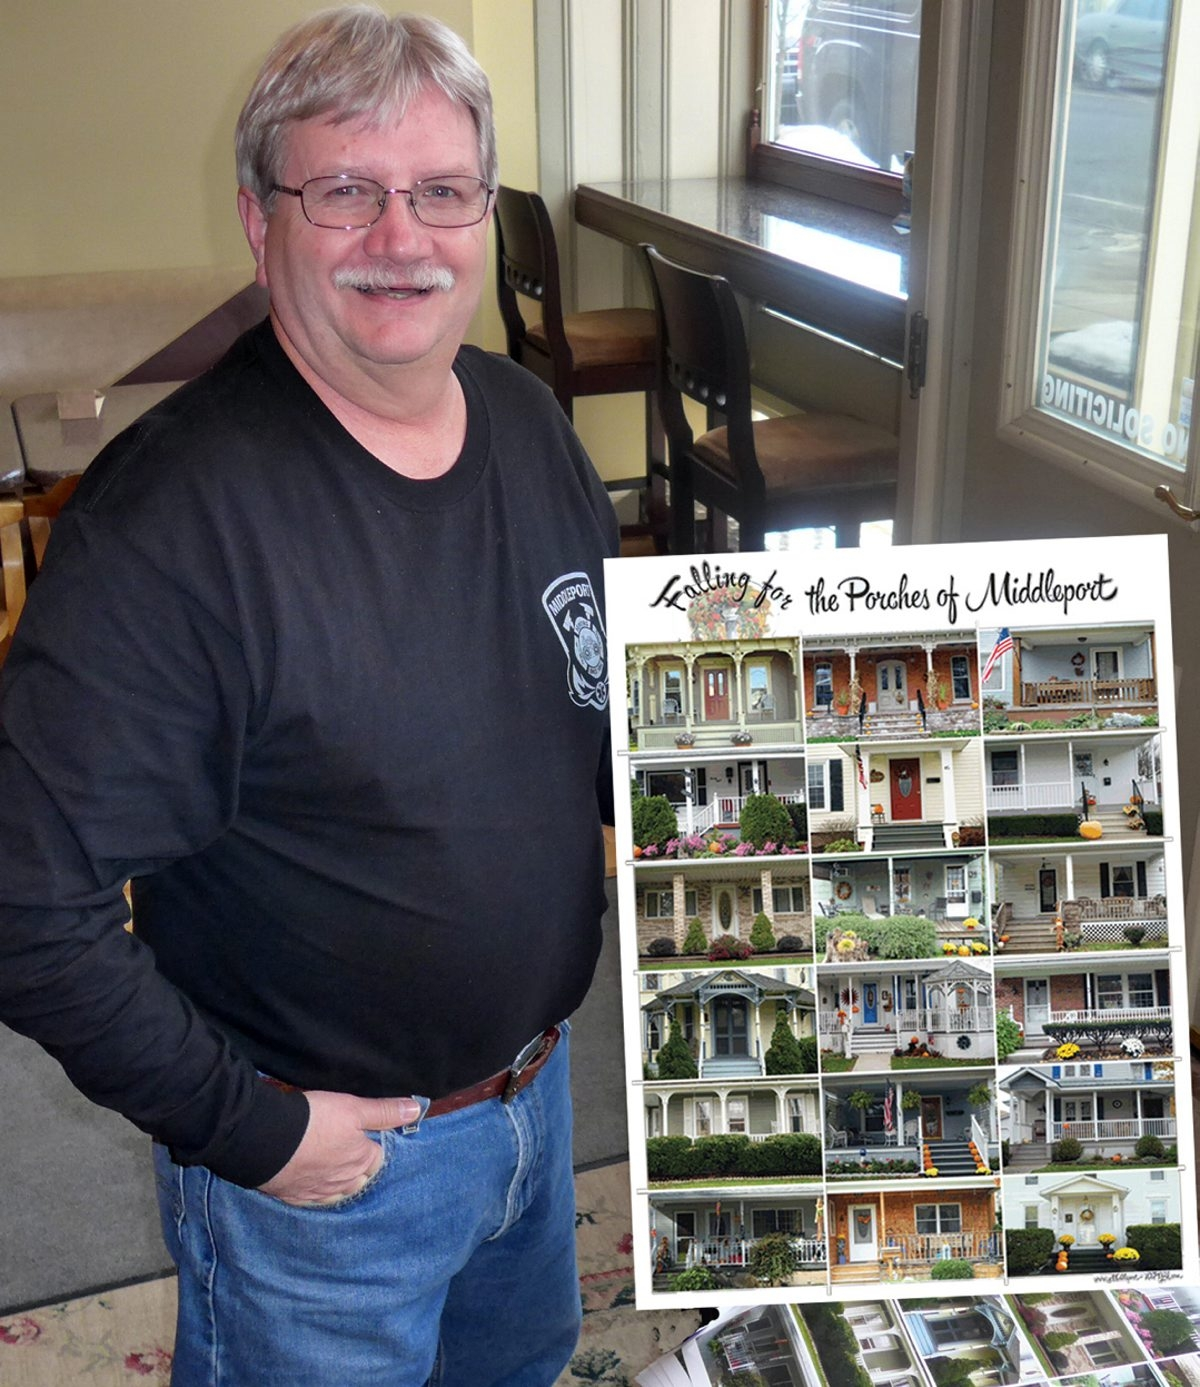 """Middleport Mayor Richard Westcott's porch was featured on the """"Falling for the Porches of Middleport"""" poster. The poster is part of a promotional campaign for the village and was photographed by Middleport native Gretchen Schweigert."""